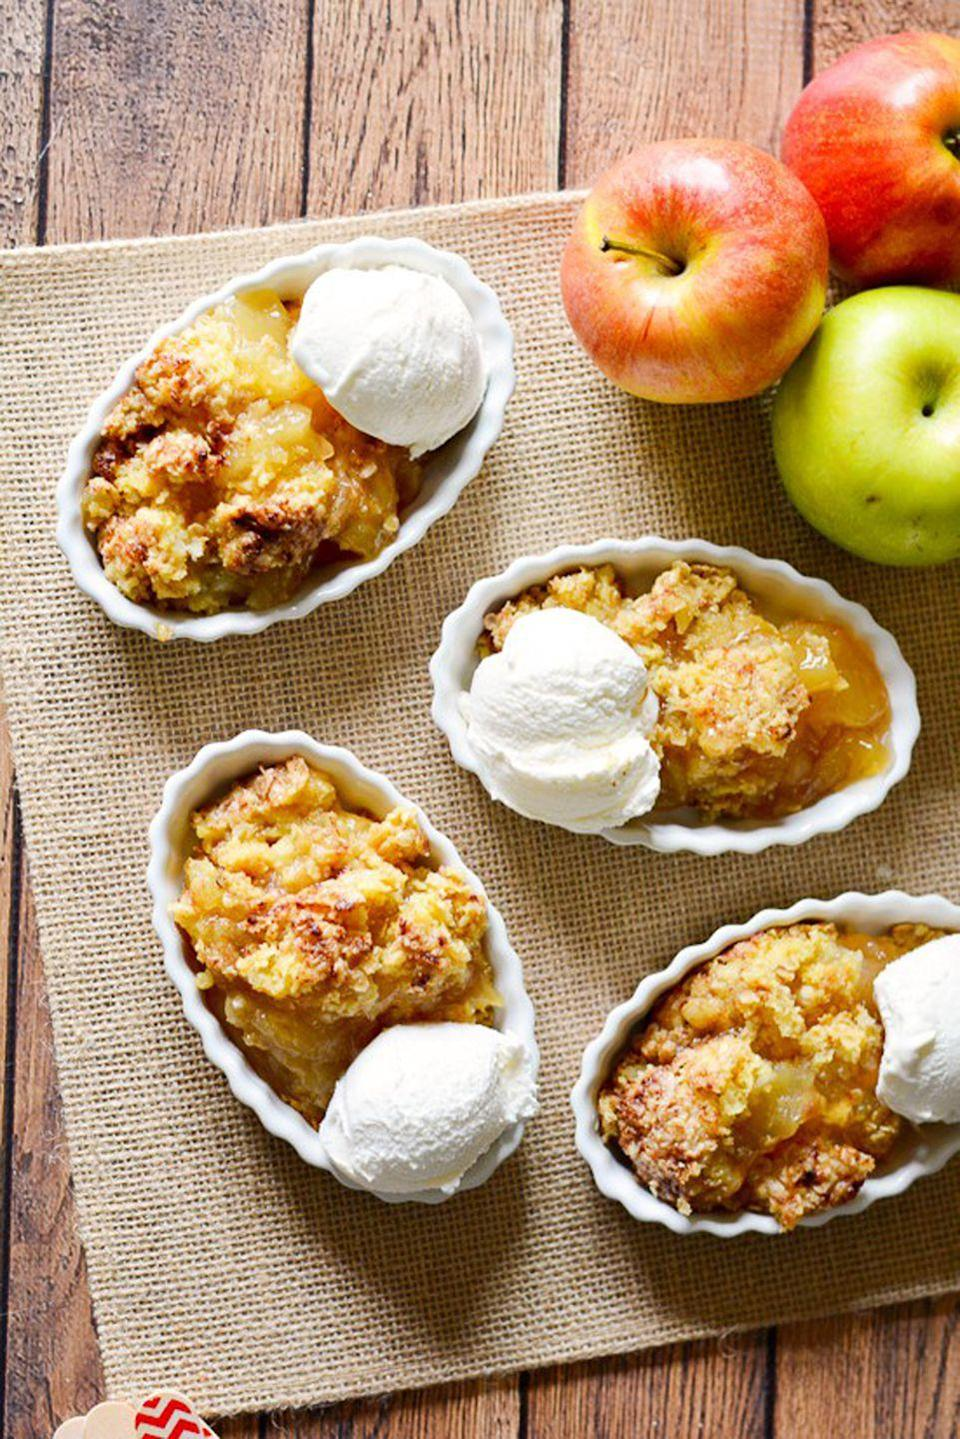 """<p>Ever have a late-night sweet tooth but don't want to stay up making your favorite treat? This easy apple cobbler is ready in just 30 minutes.</p><p><strong>Get the recipe at <a rel=""""nofollow noopener"""" href=""""https://www.thegraciouswife.com/easy-apple-cobbler-recipe/"""" target=""""_blank"""" data-ylk=""""slk:The Gracious Wife"""" class=""""link rapid-noclick-resp"""">The Gracious Wife</a>.</strong><br></p><p><a rel=""""nofollow noopener"""" href=""""https://www.amazon.com/Wilton-Perfect-Results-Non-Stick-Multipack/dp/B07328J6QJ"""" target=""""_blank"""" data-ylk=""""slk:SHOP BAKING PANS"""" class=""""link rapid-noclick-resp"""">SHOP BAKING PANS</a></p>"""